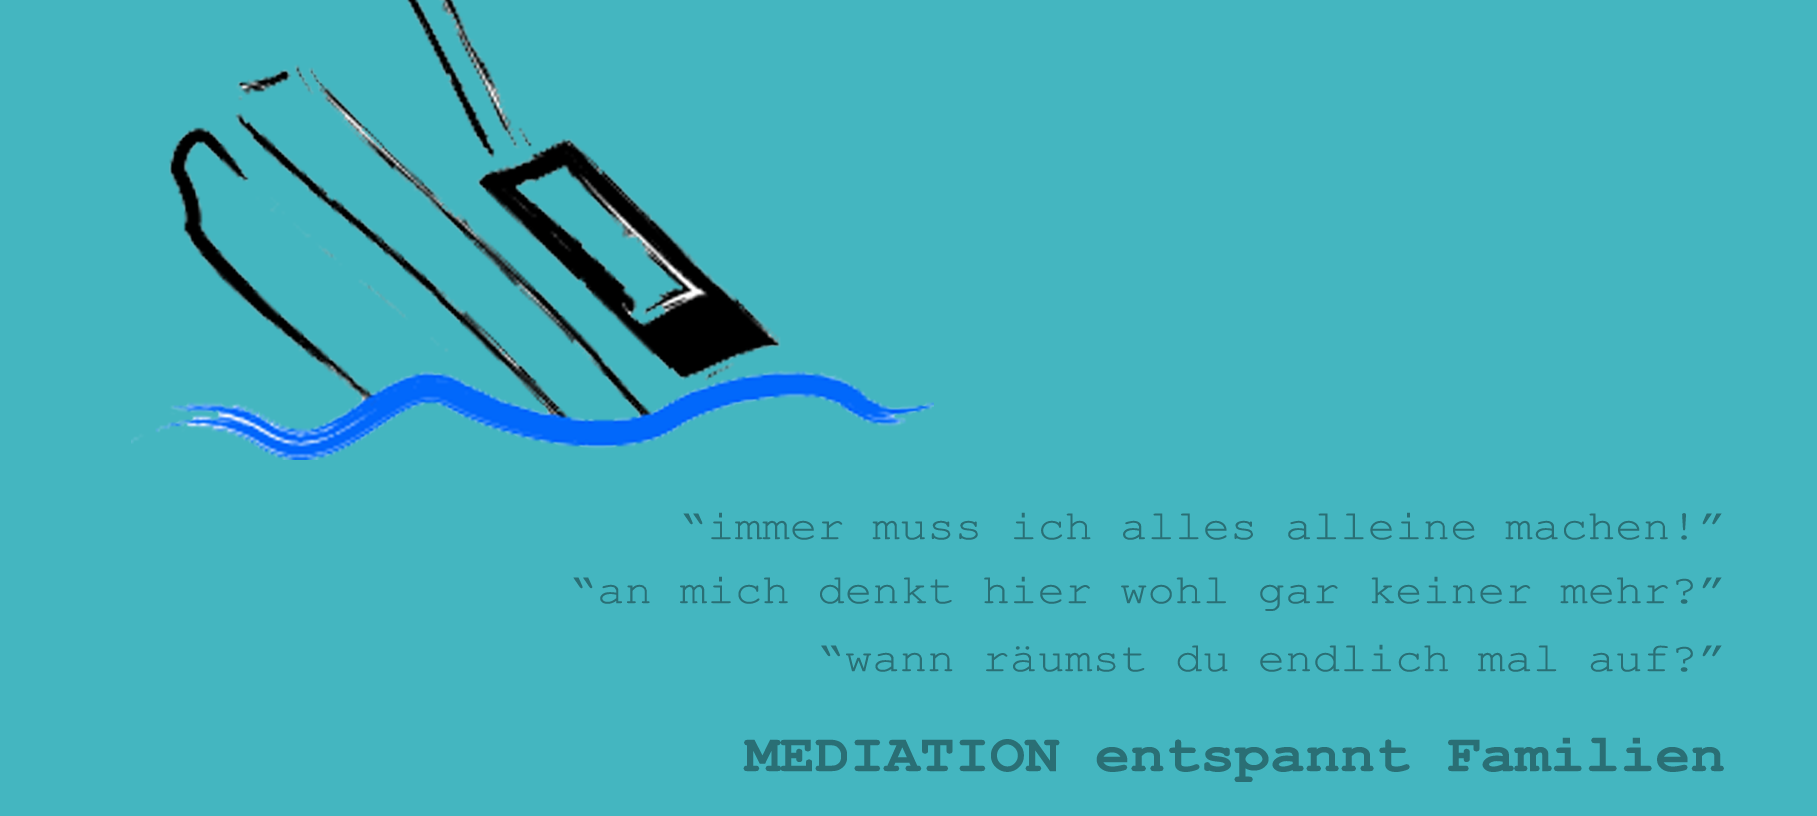 mediation_familien_blau